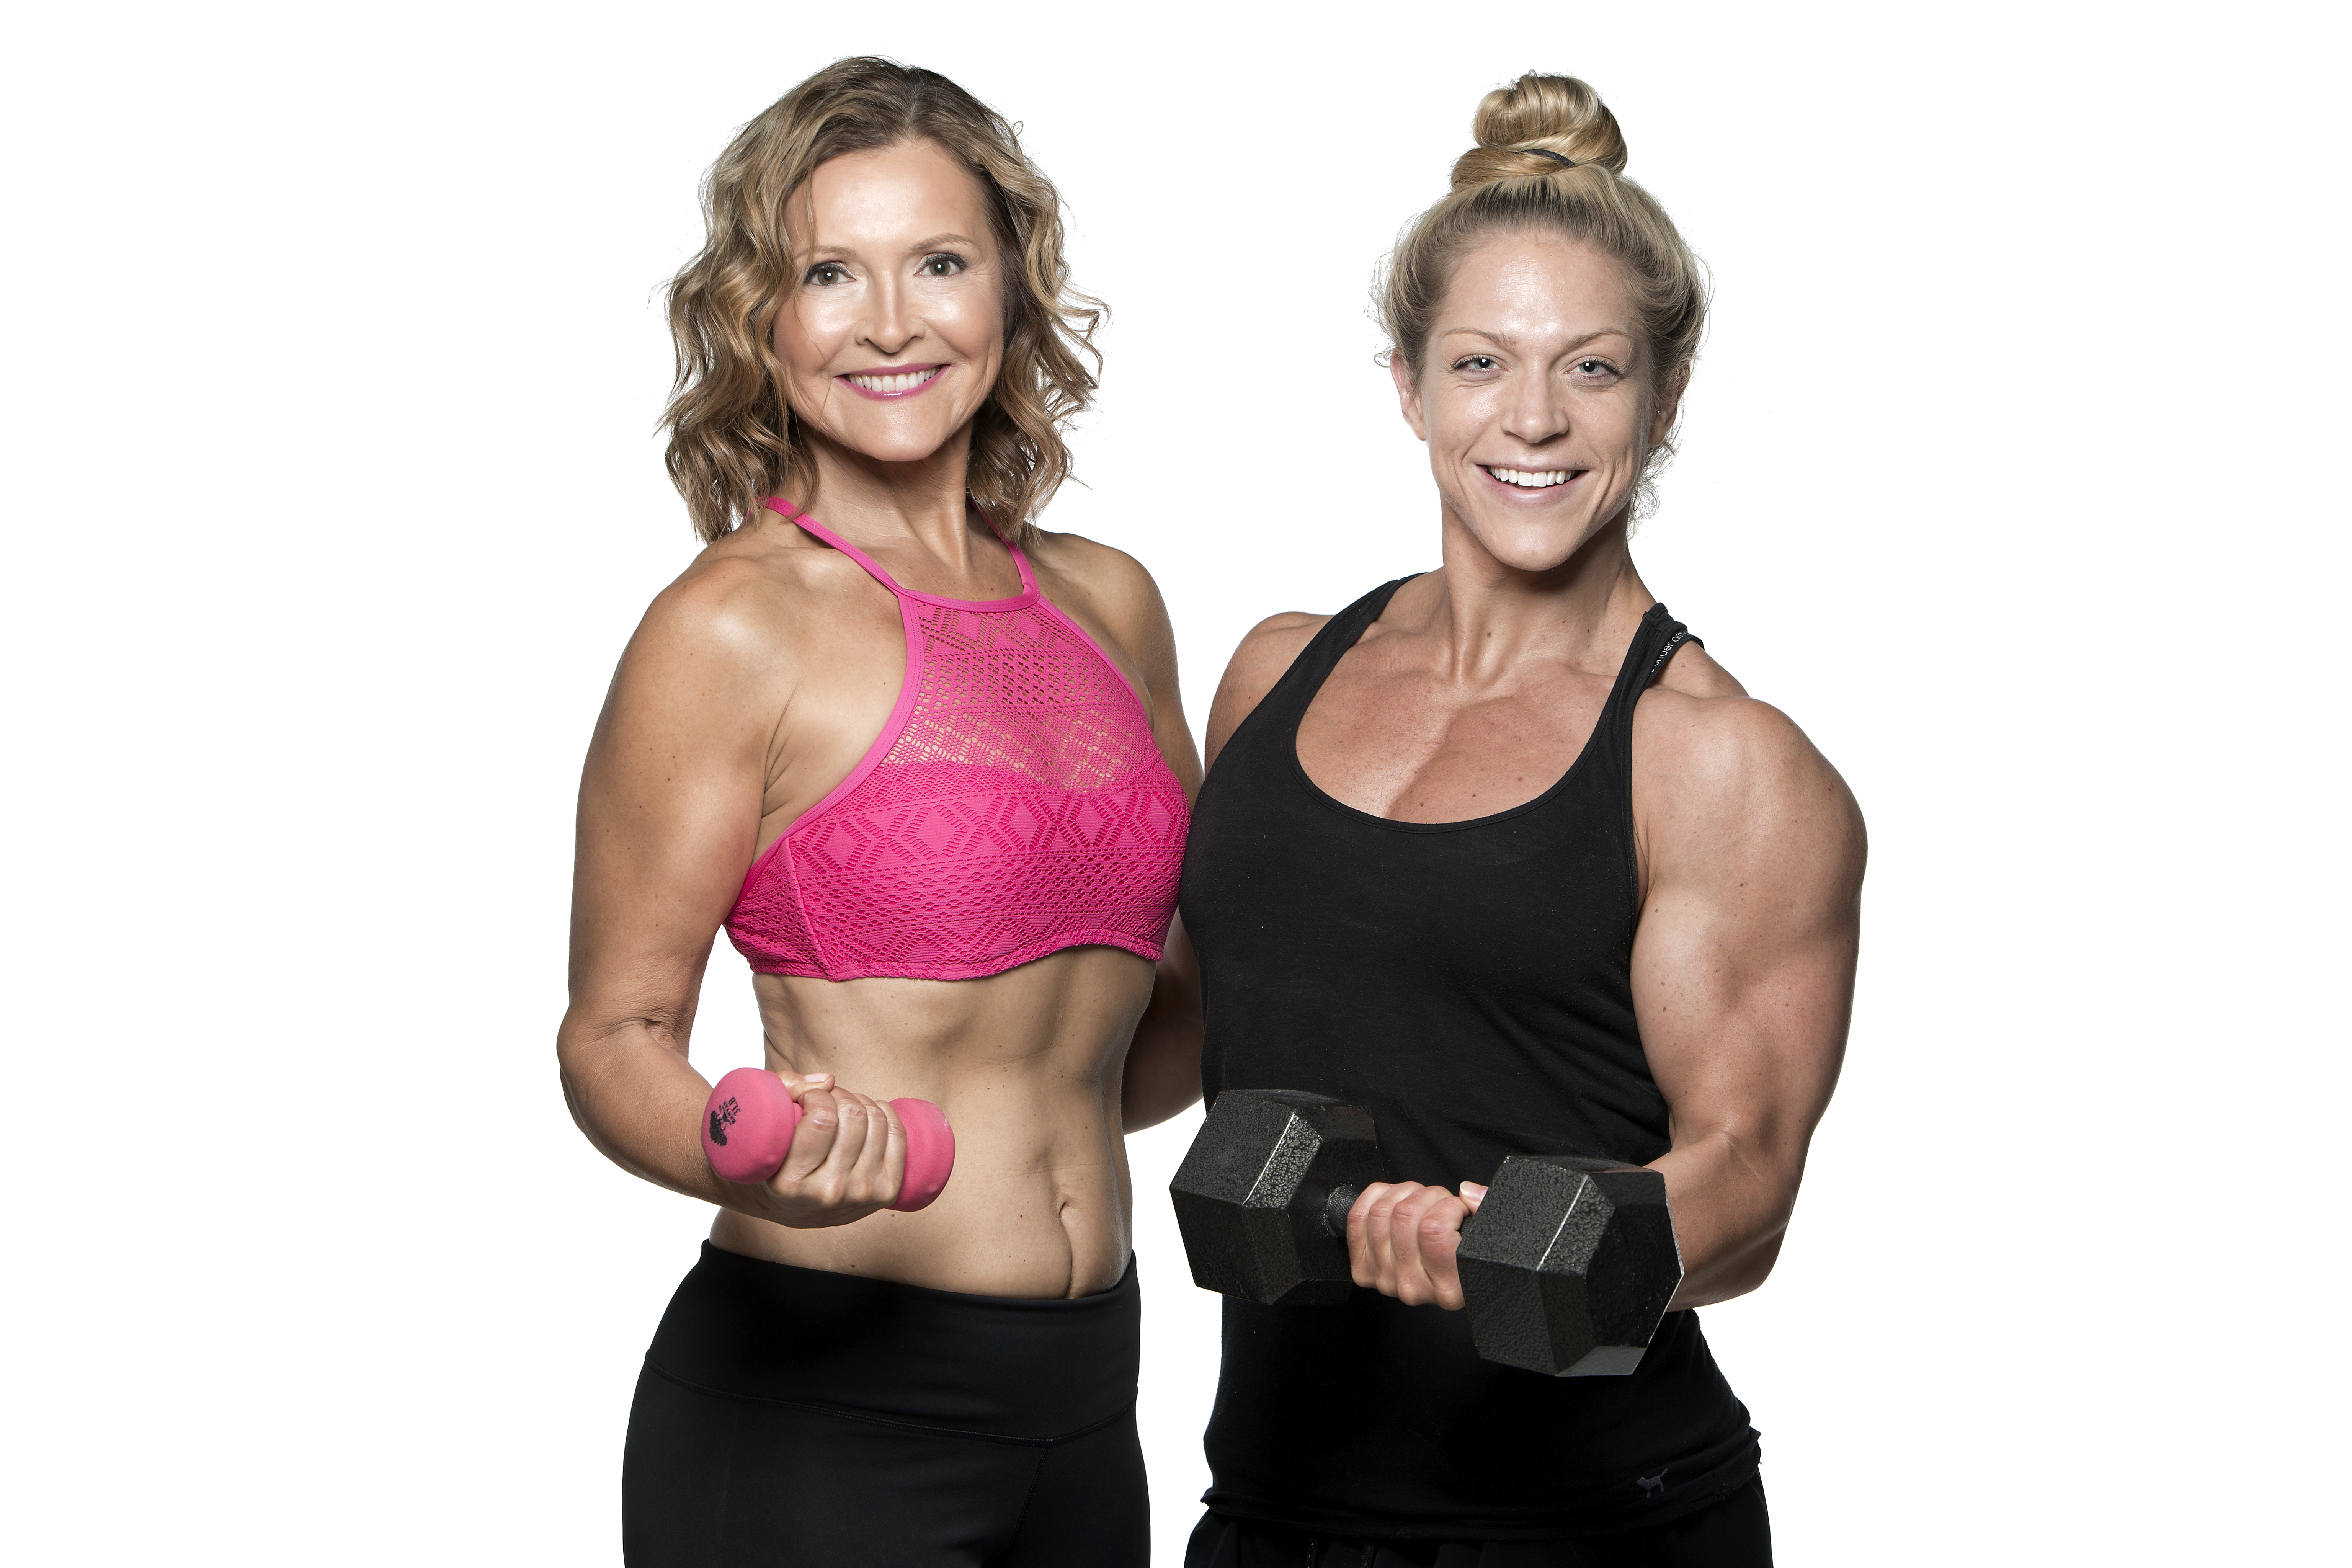 Dr. Mimi with her daughter Coach Kat, both holding hand weights